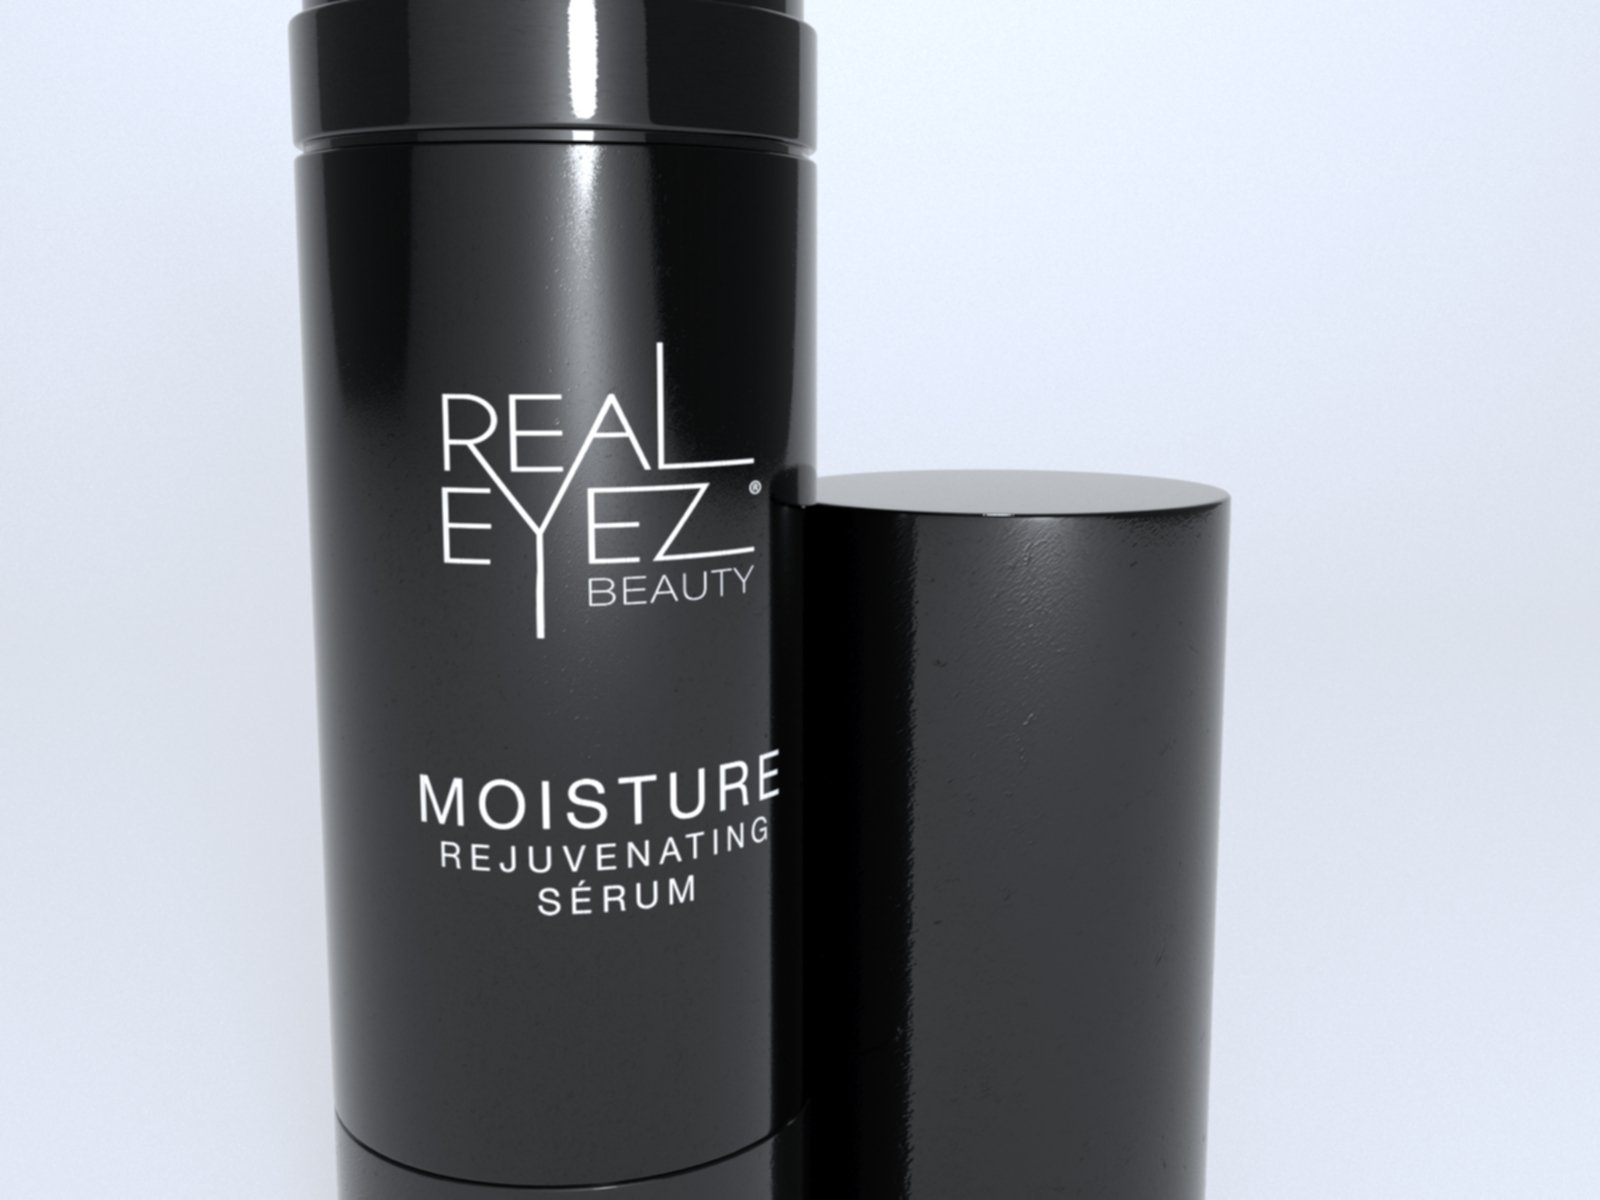 Moisture Rejuvenating Serum 20ml [product_price] Real Eyez Beauty